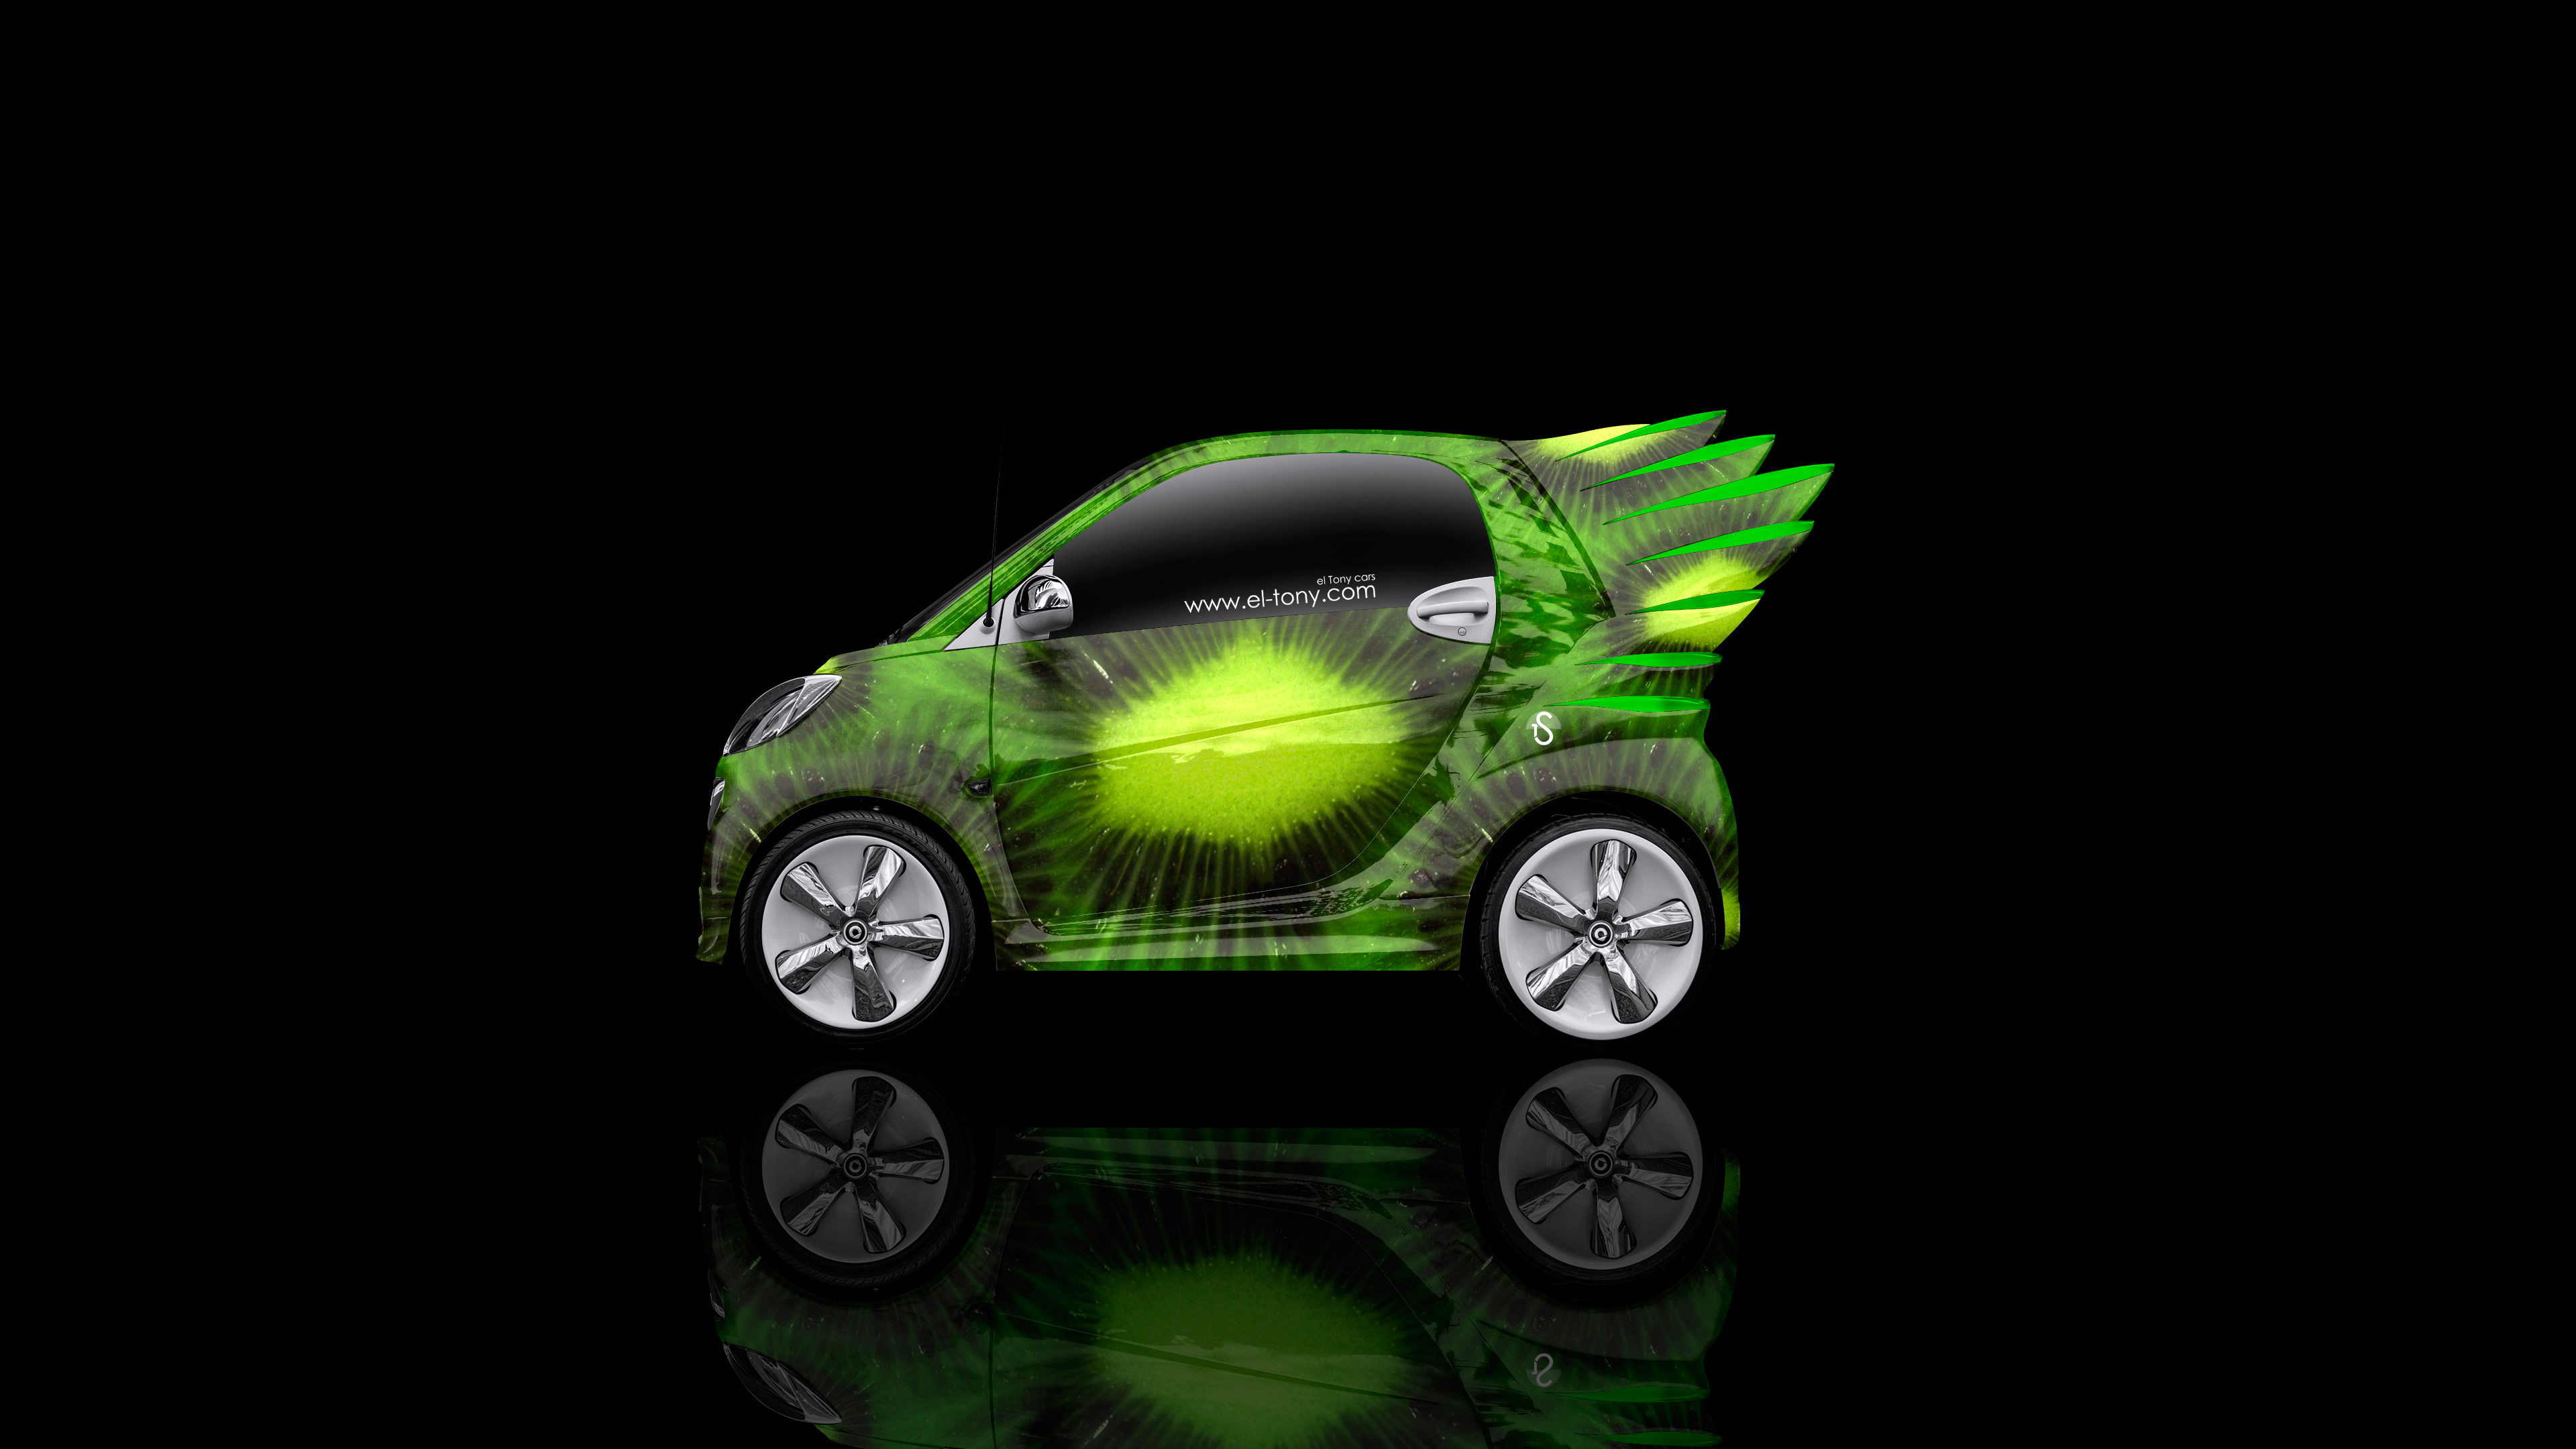 Charming Attrayant Smart Electro Kiwi Aerography Car 2014 Green Colors